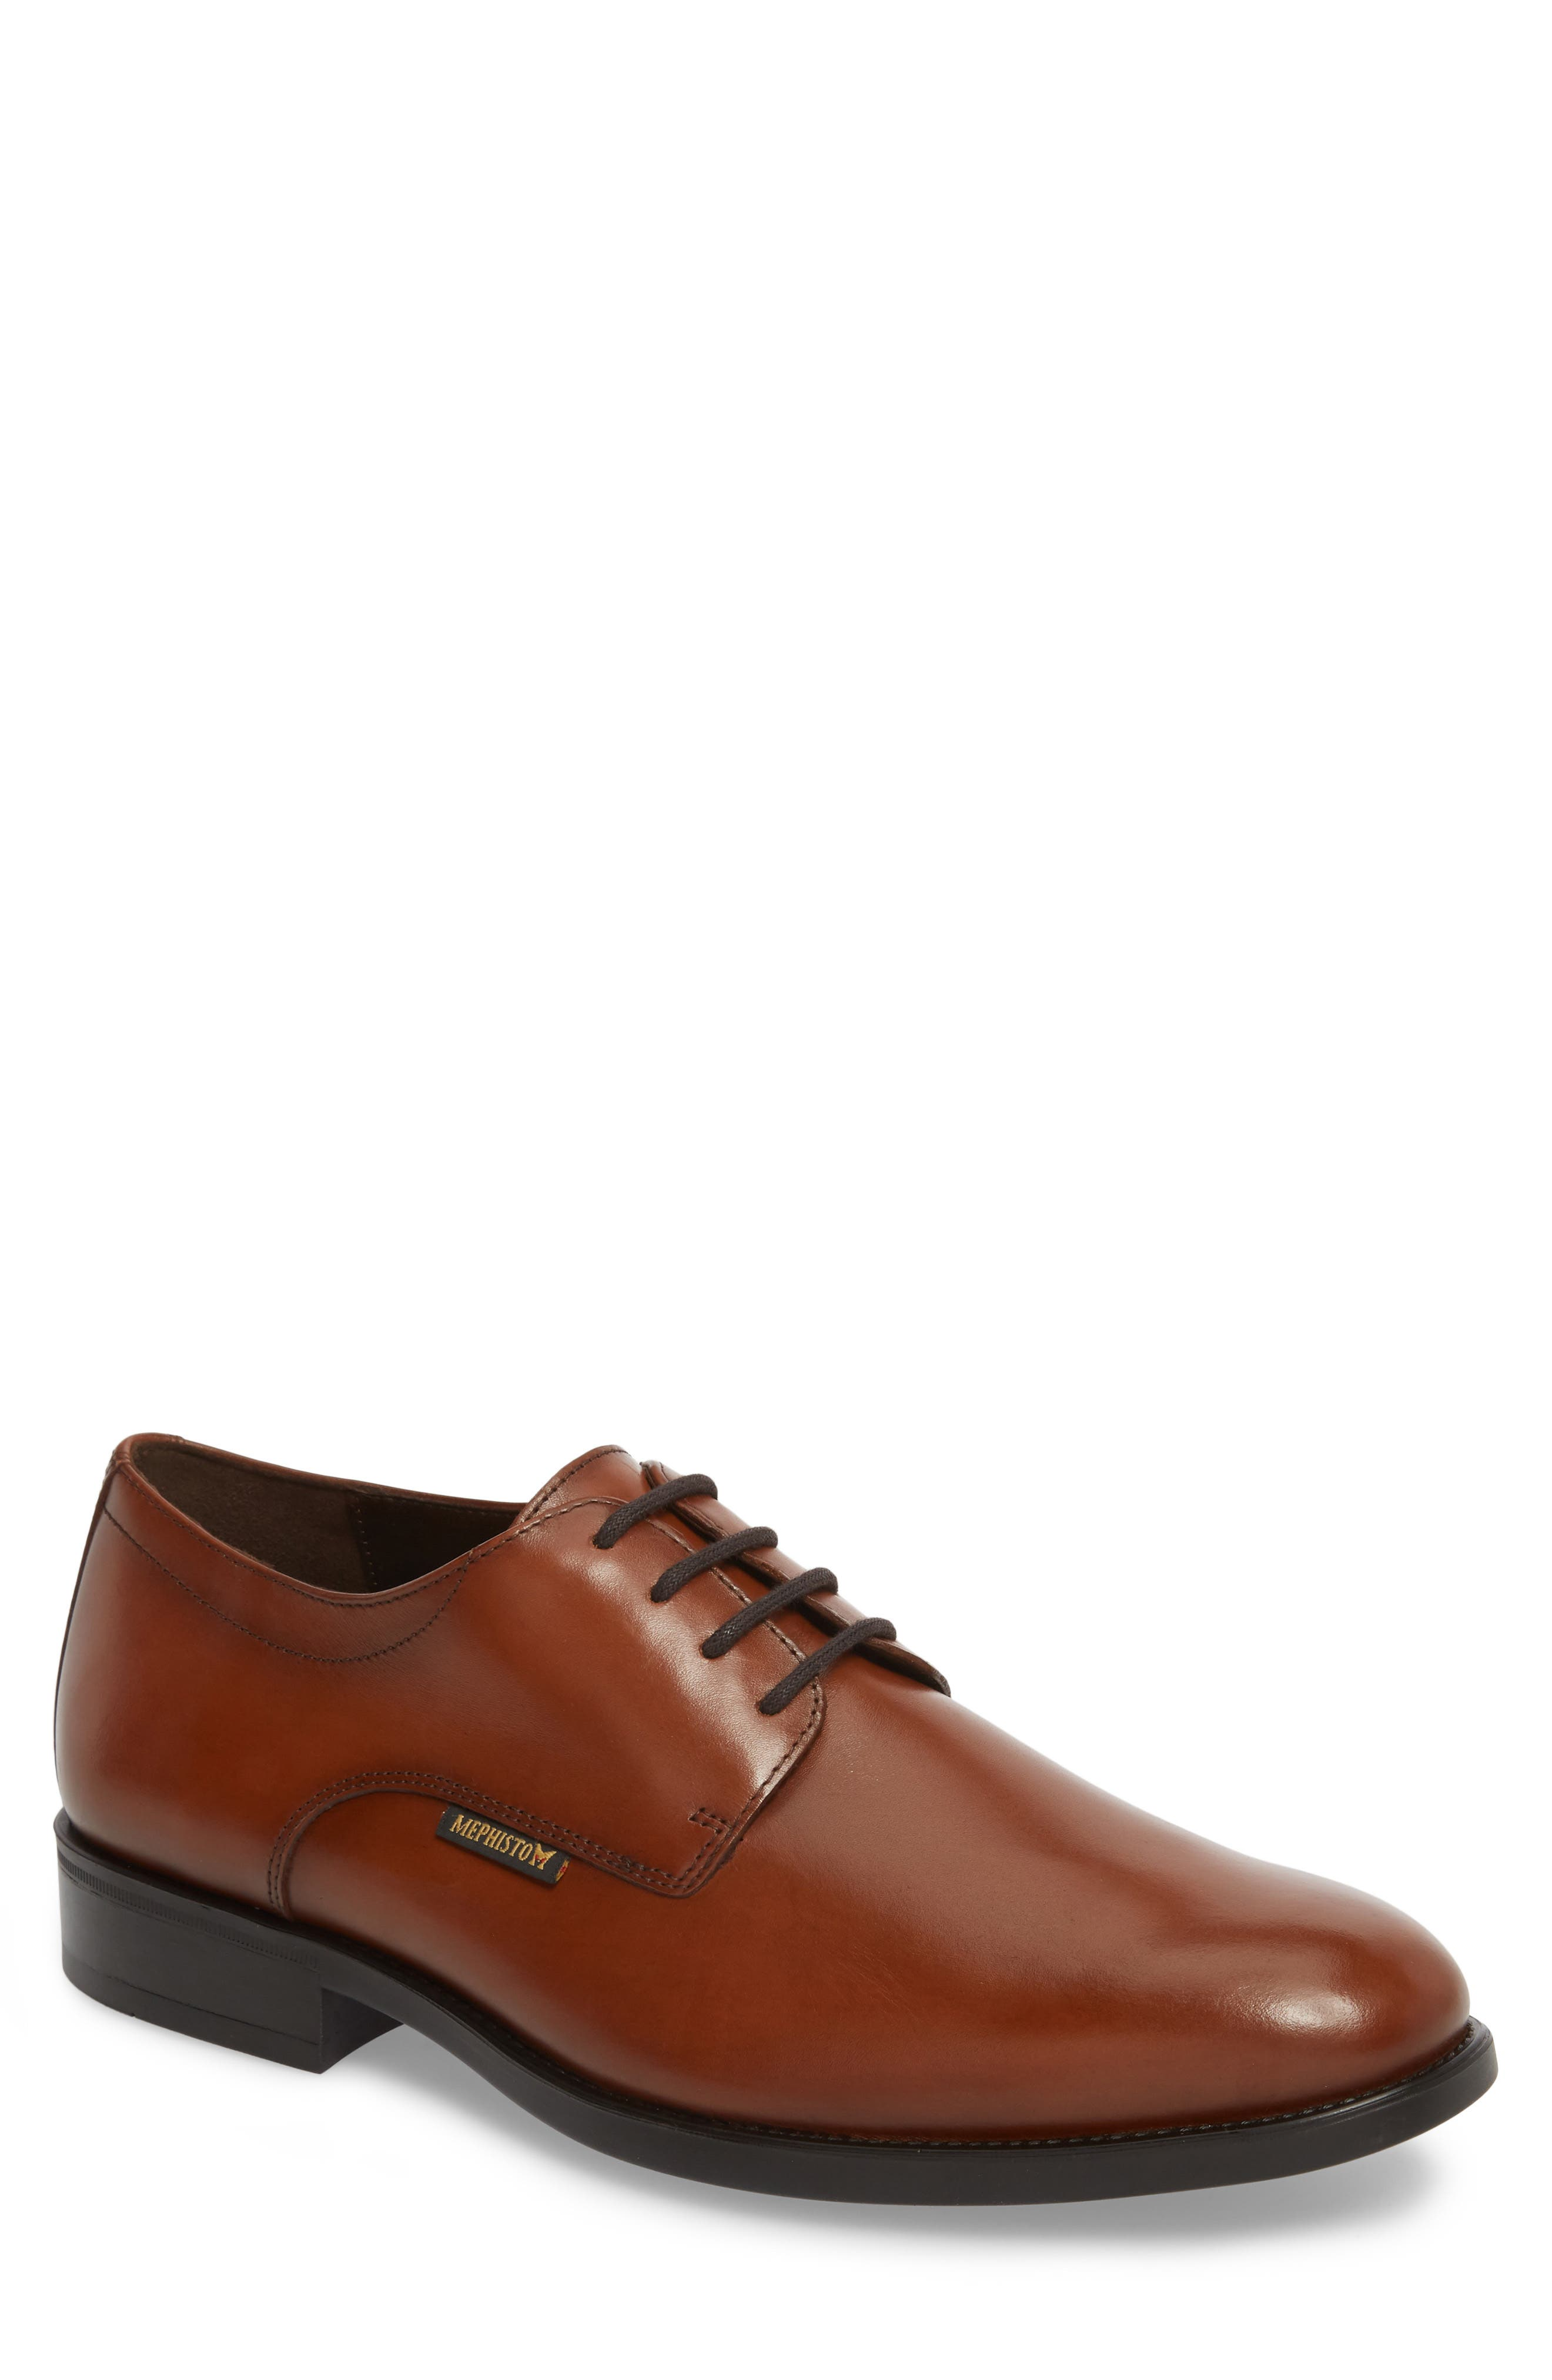 'Cooper' Plain Toe Derby,                             Main thumbnail 1, color,                             CHESTNUT LEATHER